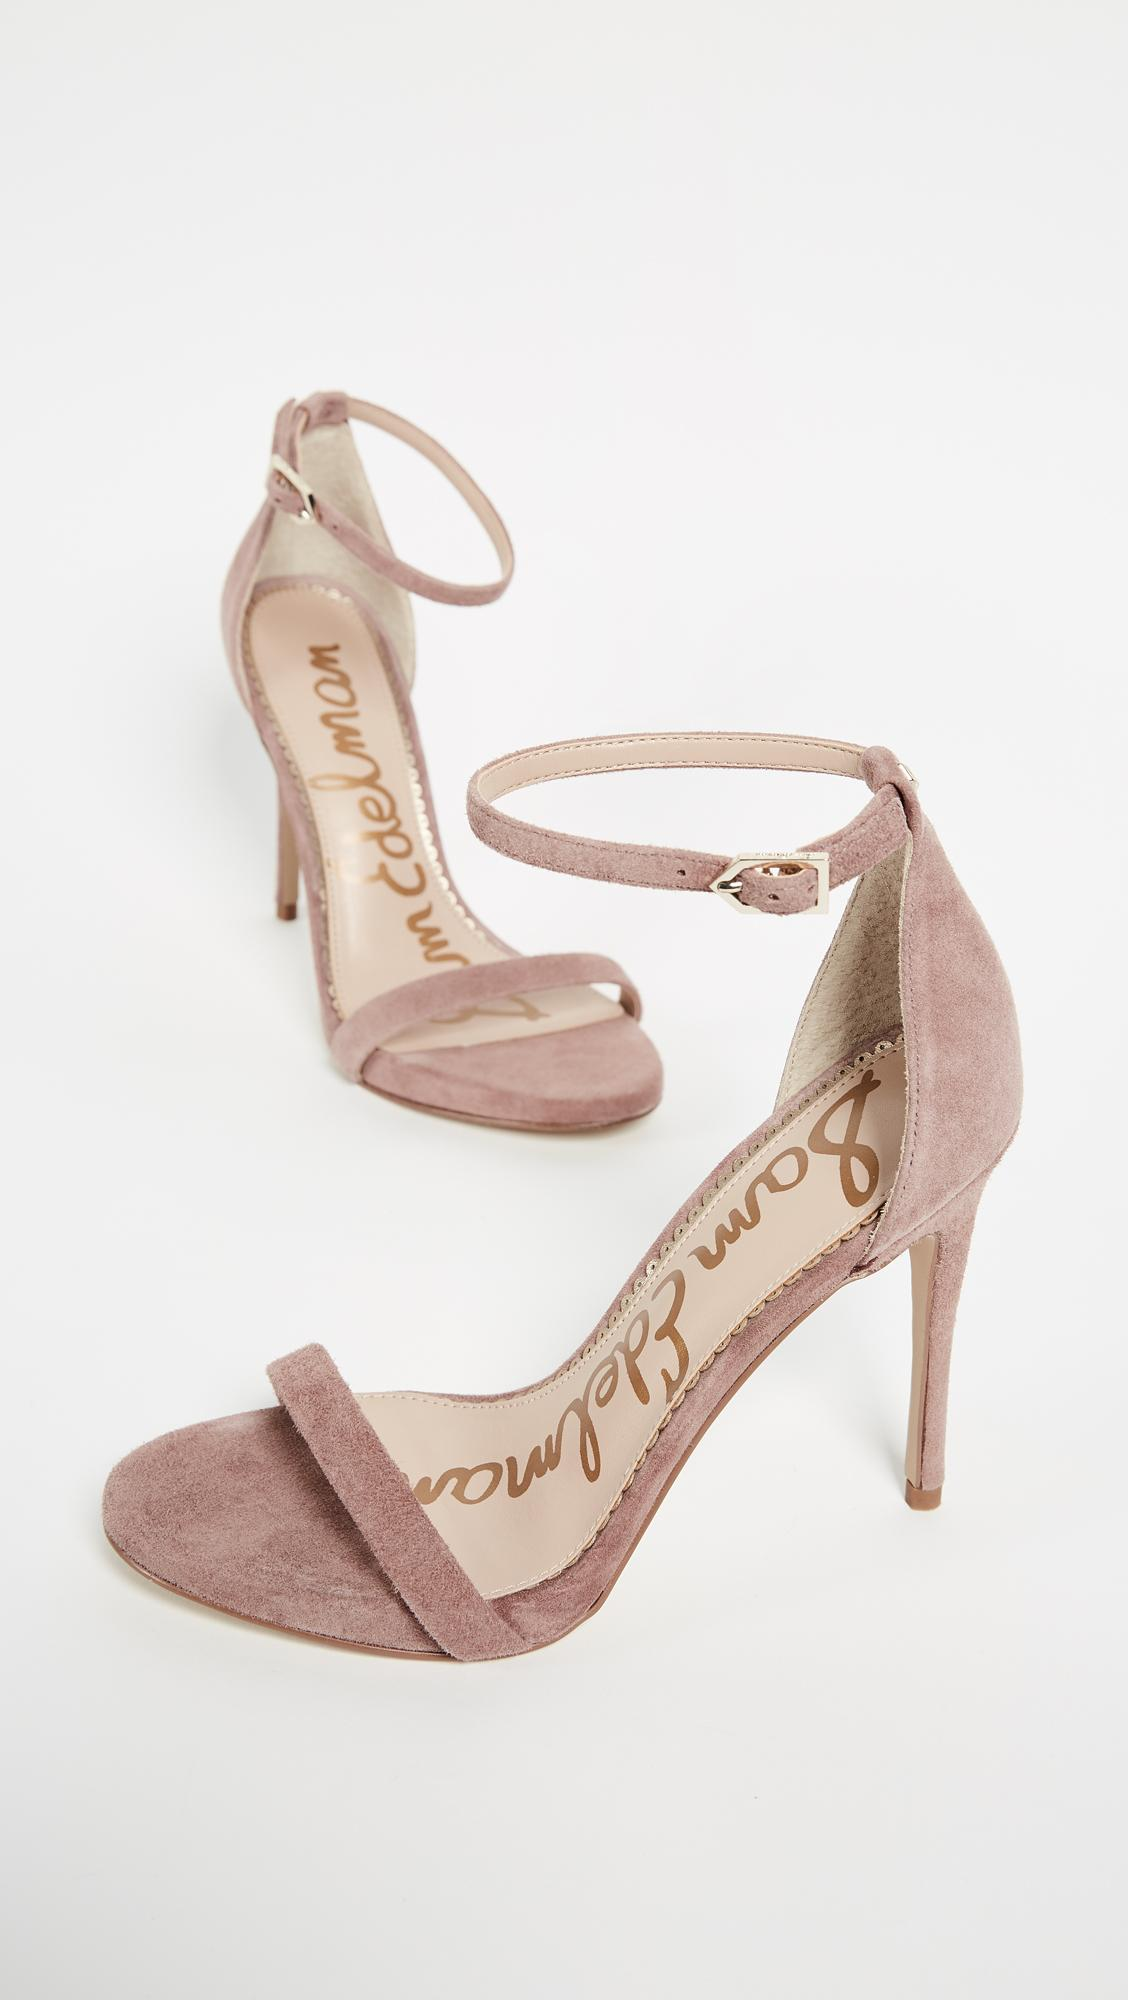 3b1aee162 Sam Edelman Ariella Sandals In Dusty Rose